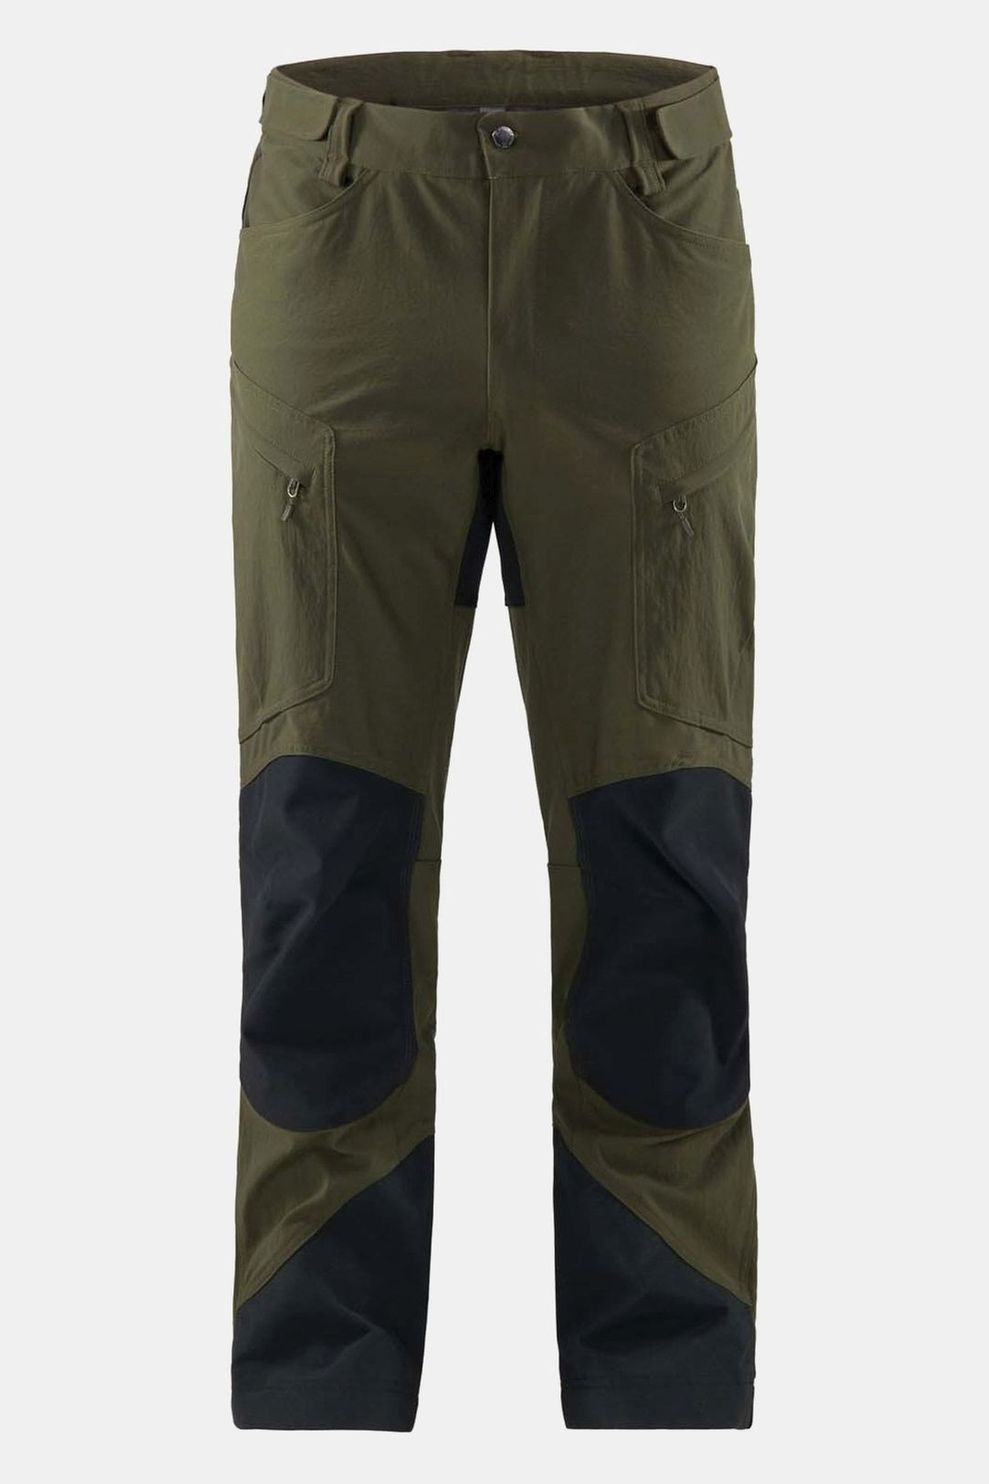 Haglofs Mens Rugged Mountain Pant Price Match 3 Year Warranty Cotswold Outdoor